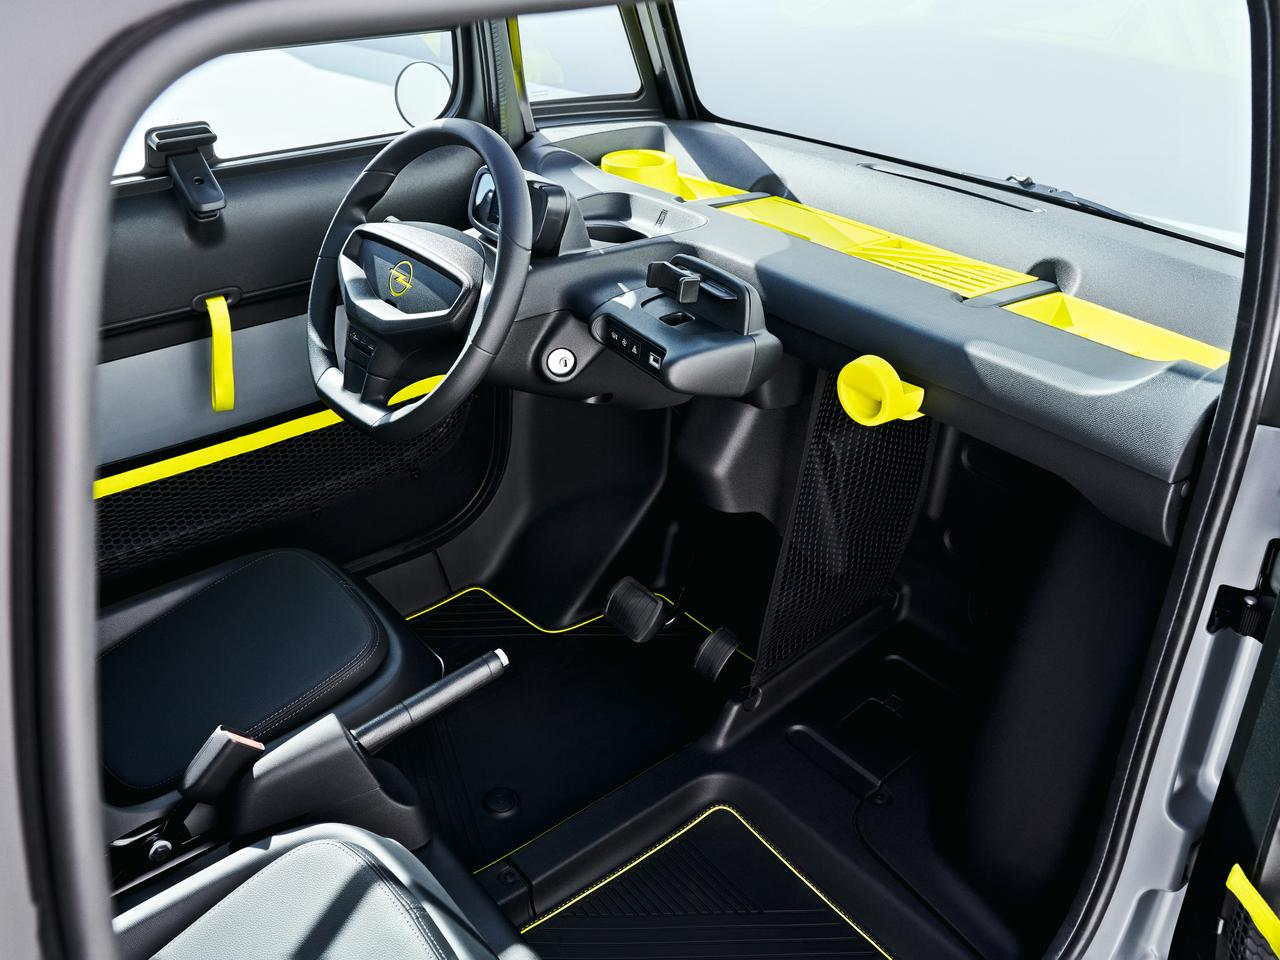 The driver can keep an eye on speed, range and driving mode courtesy of the small display in front of the steering wheel